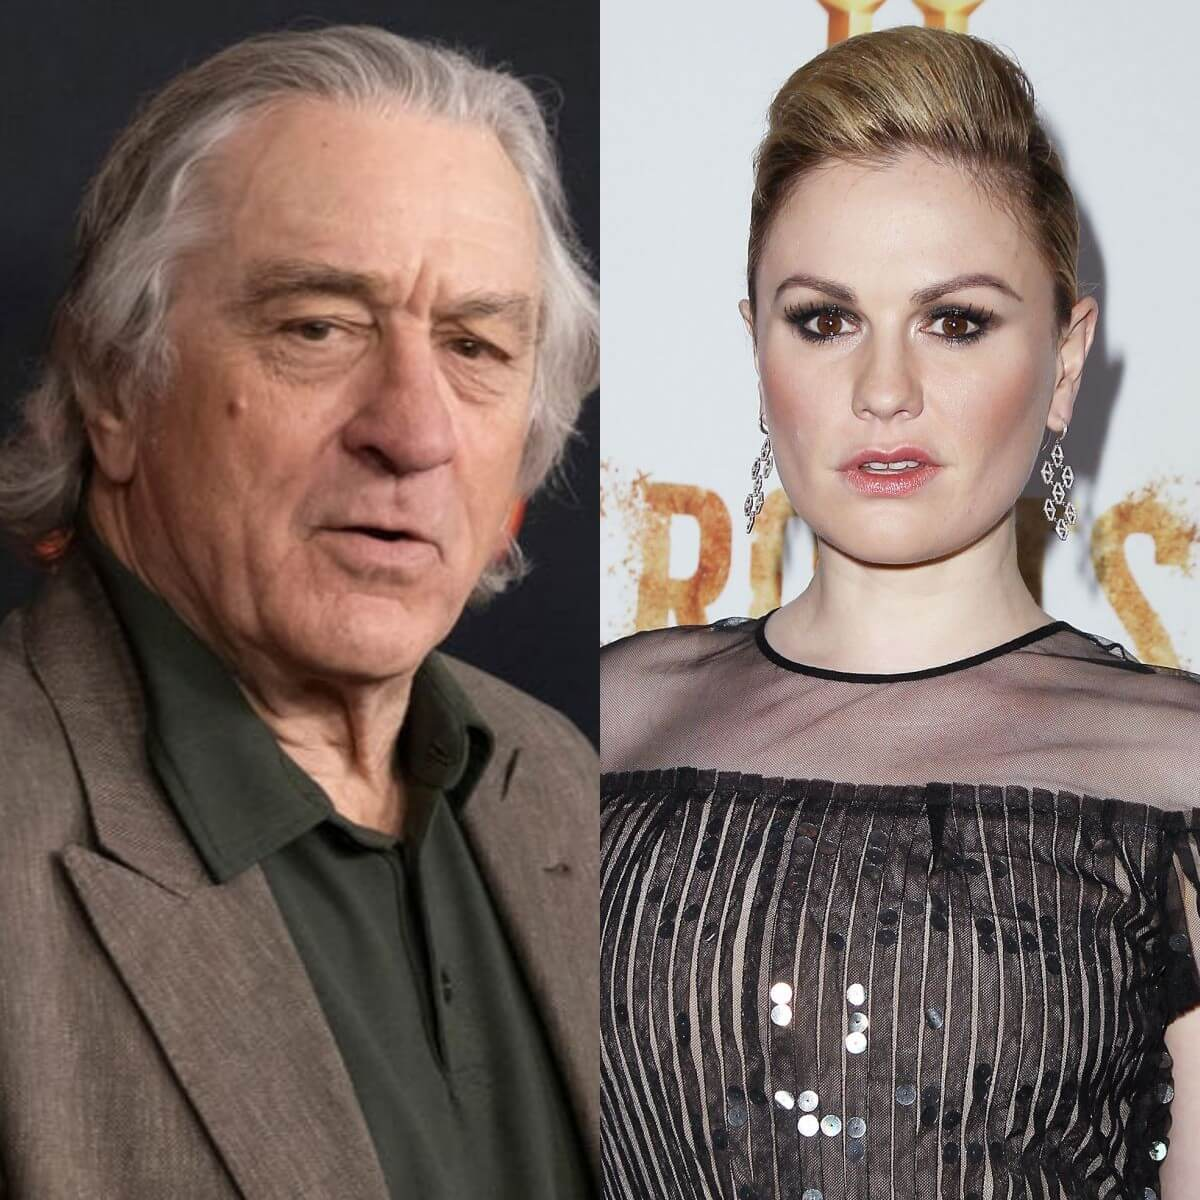 De Niro defends Anna Paquin's character's few lines and short screen time